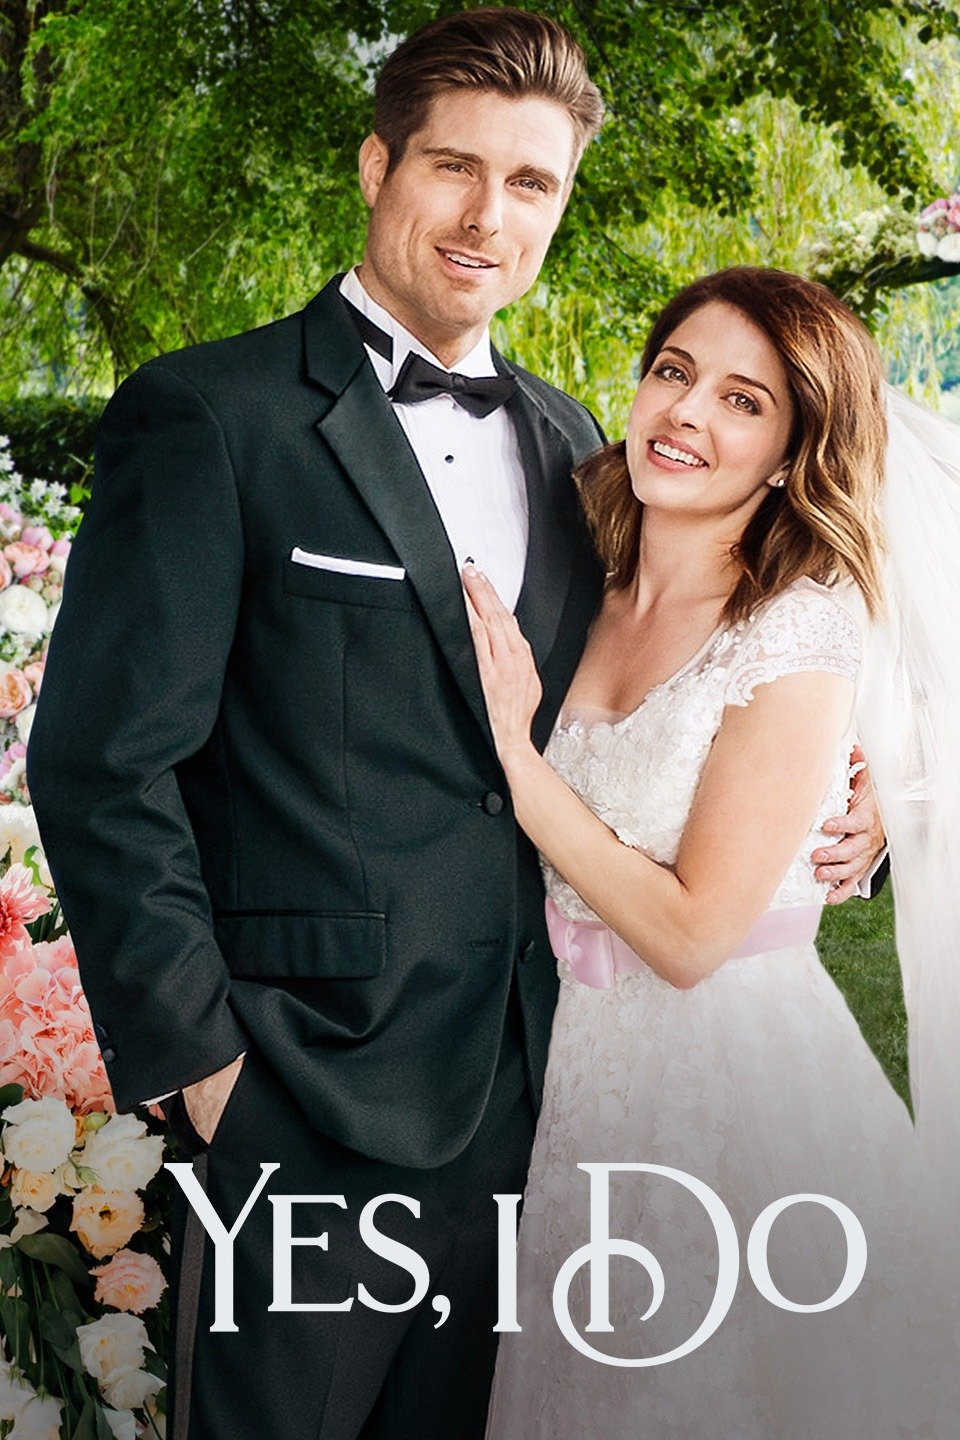 Christmas On Holly Lane 2020 Uptv Hdtv X264-Shadow Yes, I Do(2018) and A December Bride(2016)